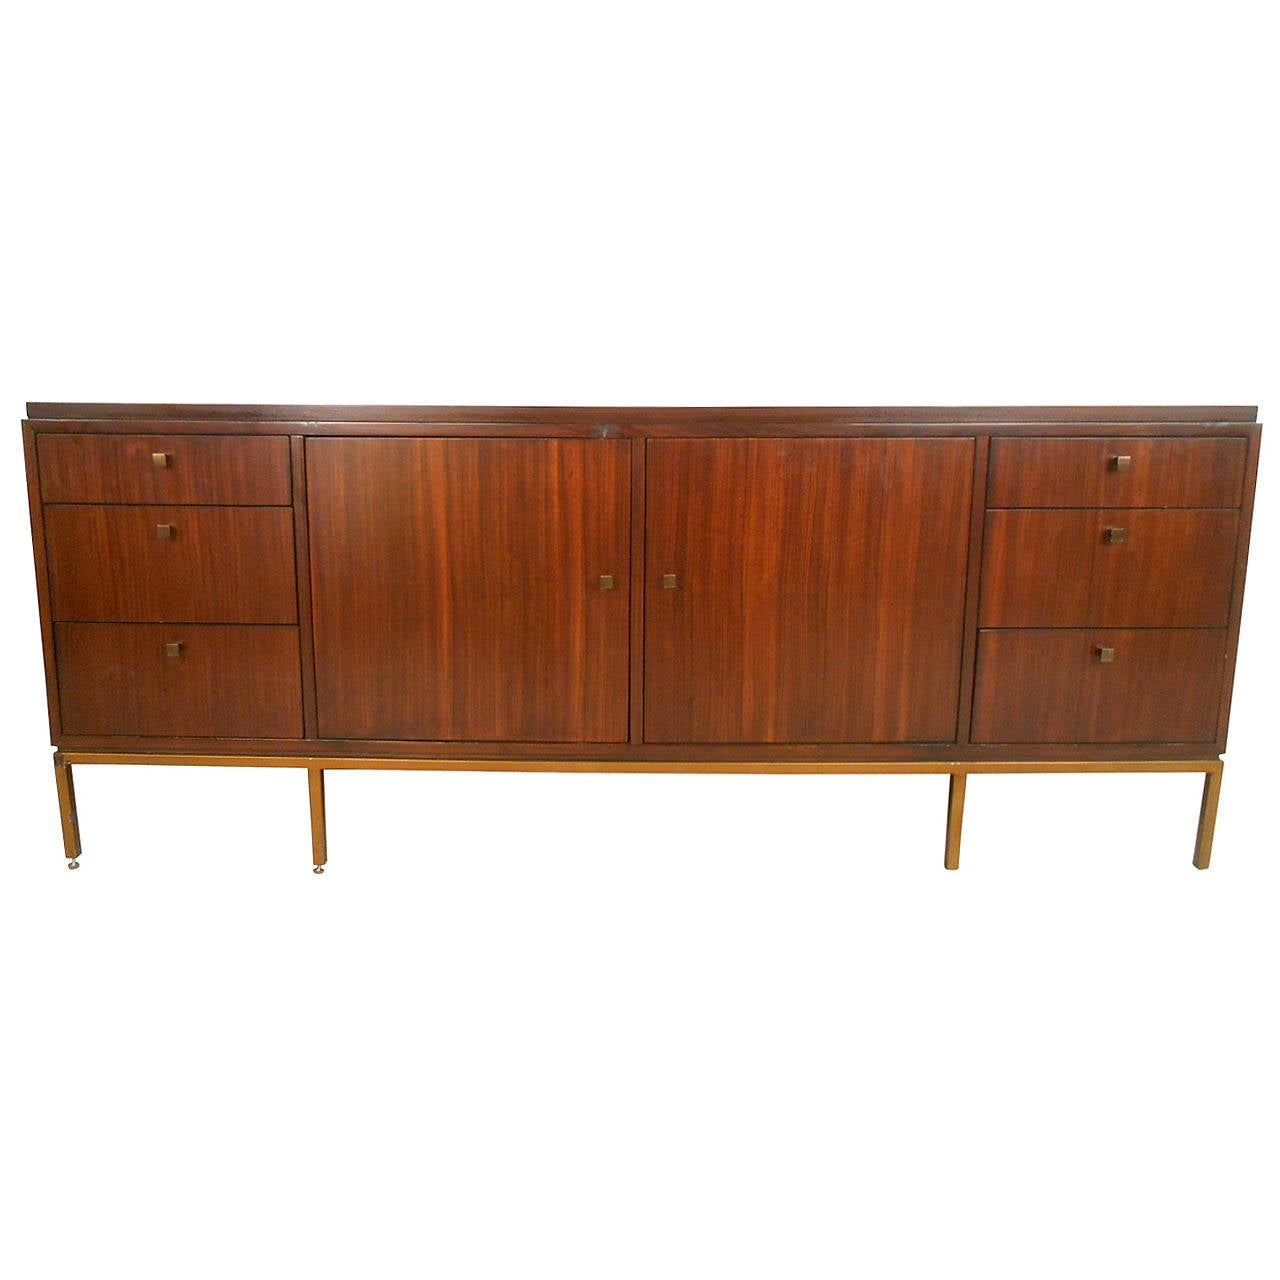 mid century modern florence knoll style sideboard at 1stdibs. Black Bedroom Furniture Sets. Home Design Ideas